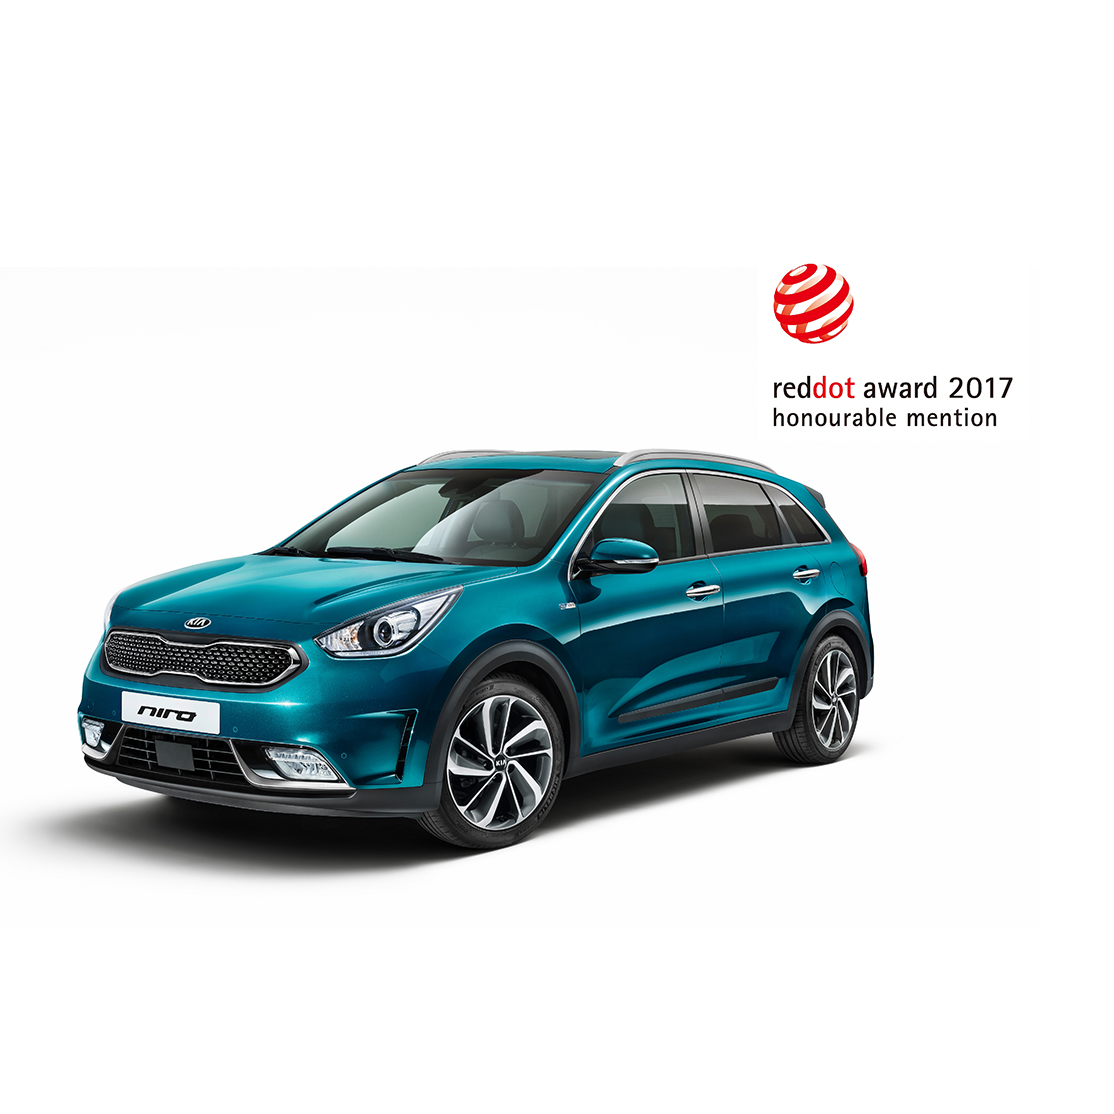 Bil Kia Niro red dot design award